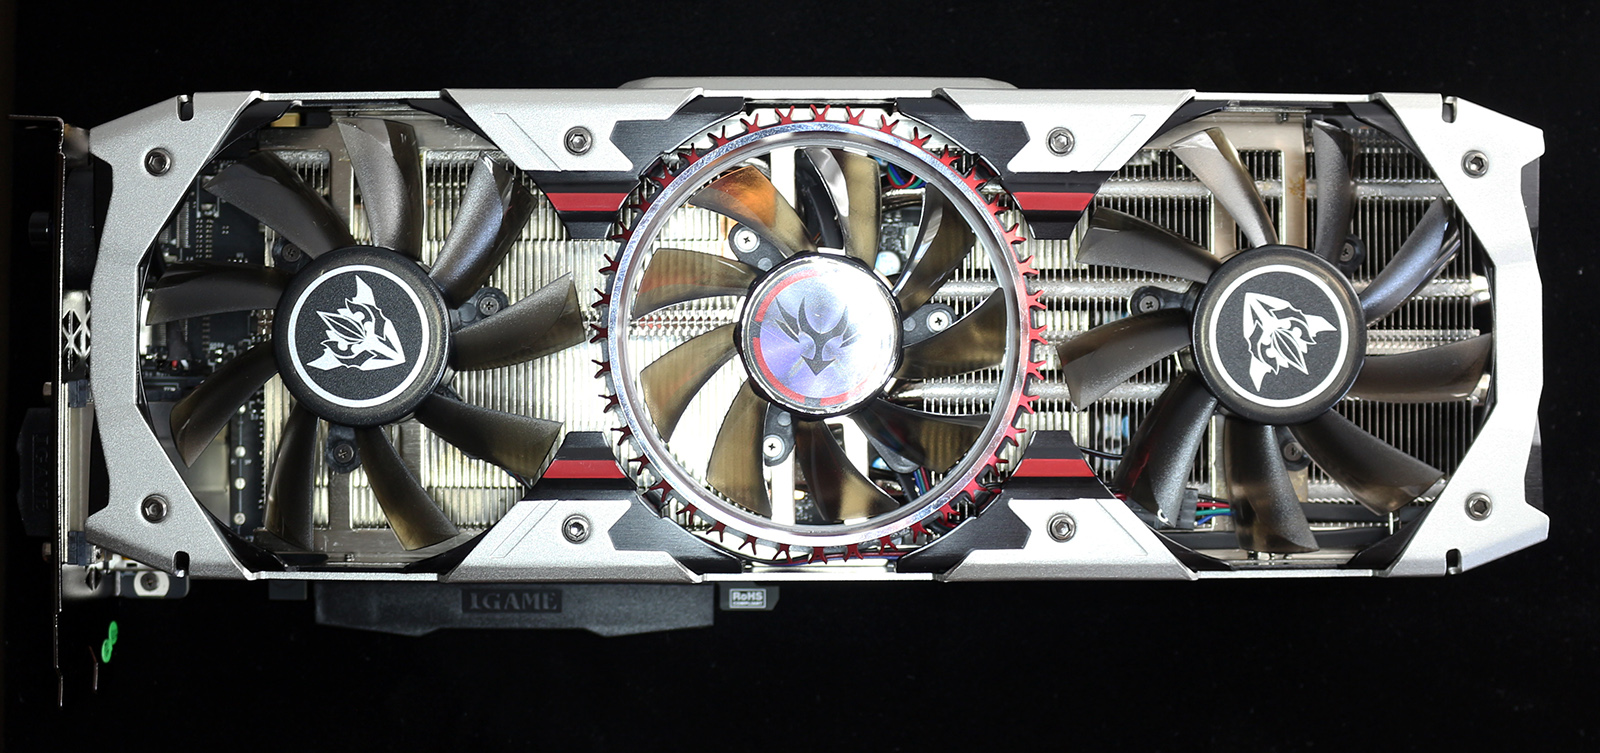 colorful igame 1070 ti vulcan AD